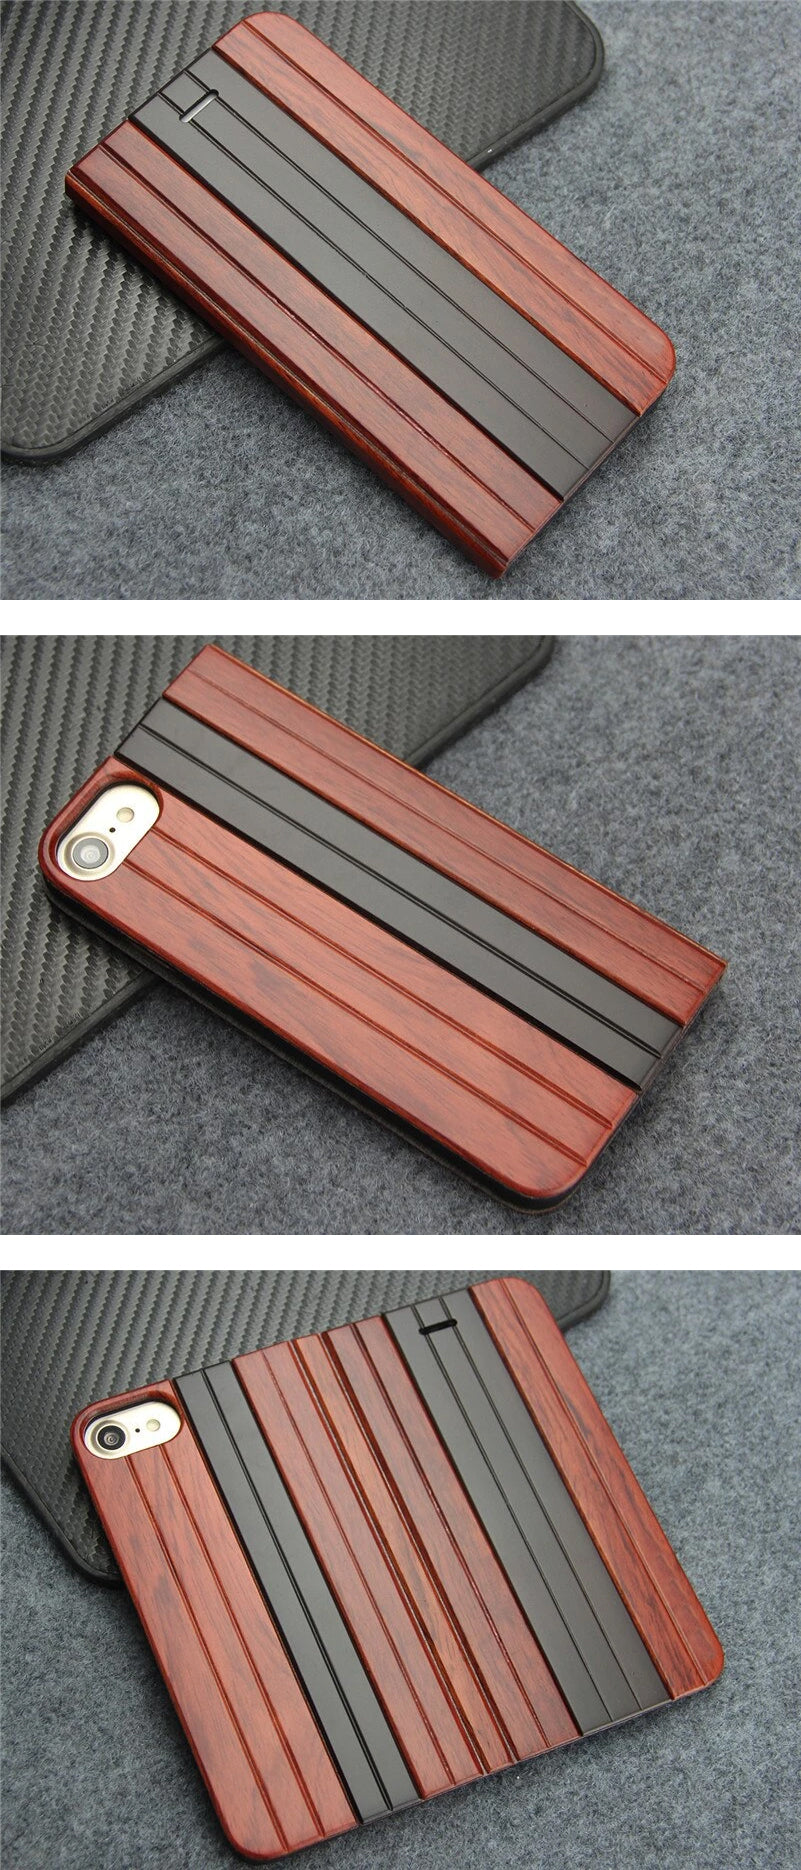 """Luxury Retro Flip Wood Case For iPhone 6 6S Plus Cover Patterned Leather Wood Phone Cases For iPhone 6S Plus 5.5"""" For Apple iPhone"""